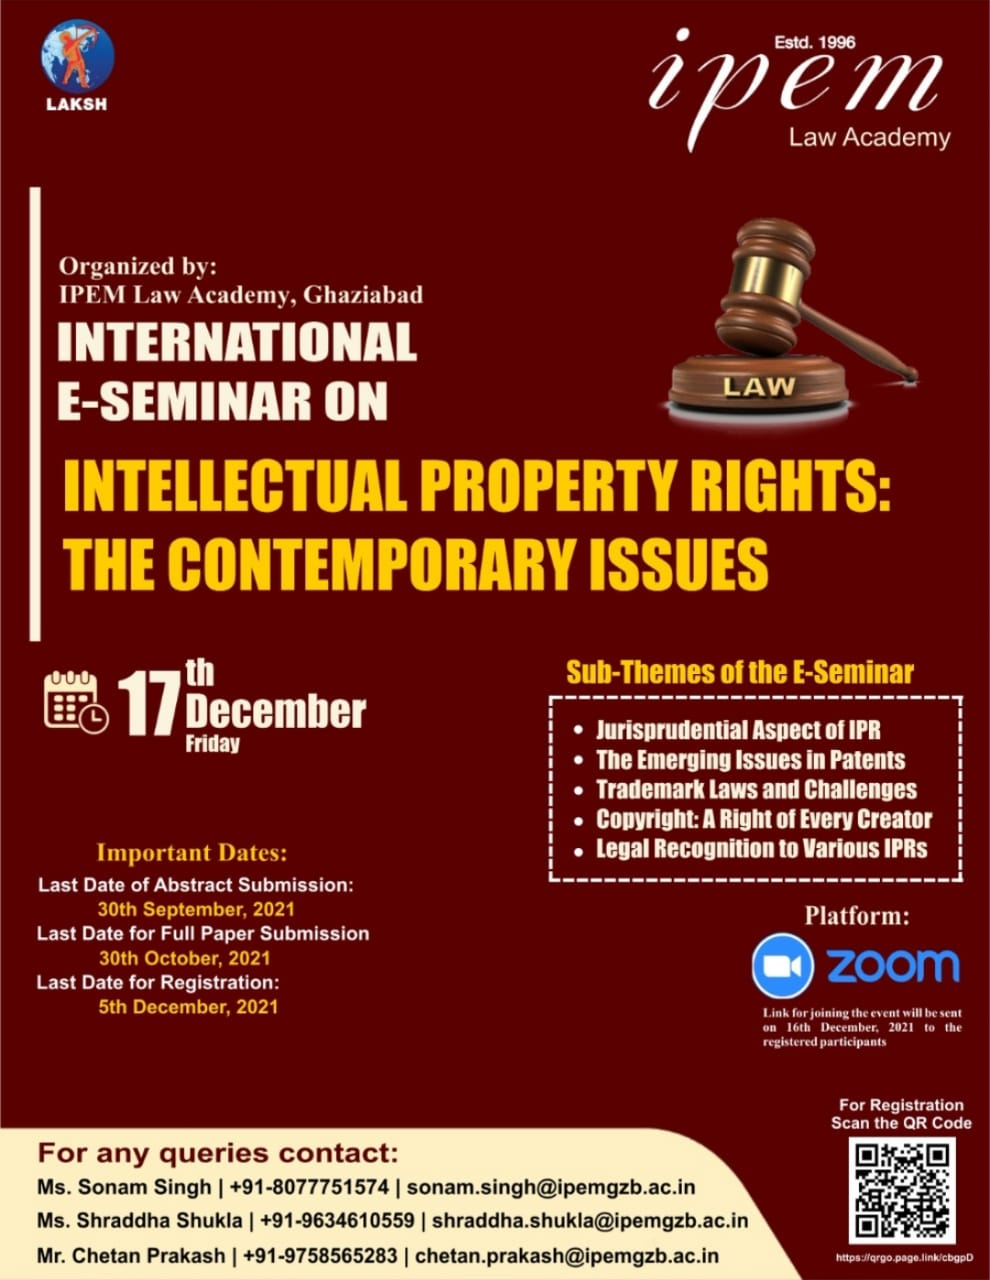 """CALL FOR PAPERS: IPEM Law Academy's International E-Seminar on """"Intellectual Property Rights: The Contemporary Issues"""" [December 17 at 10:00 AM, UTC + 5:30 hrs]: Register Now!"""